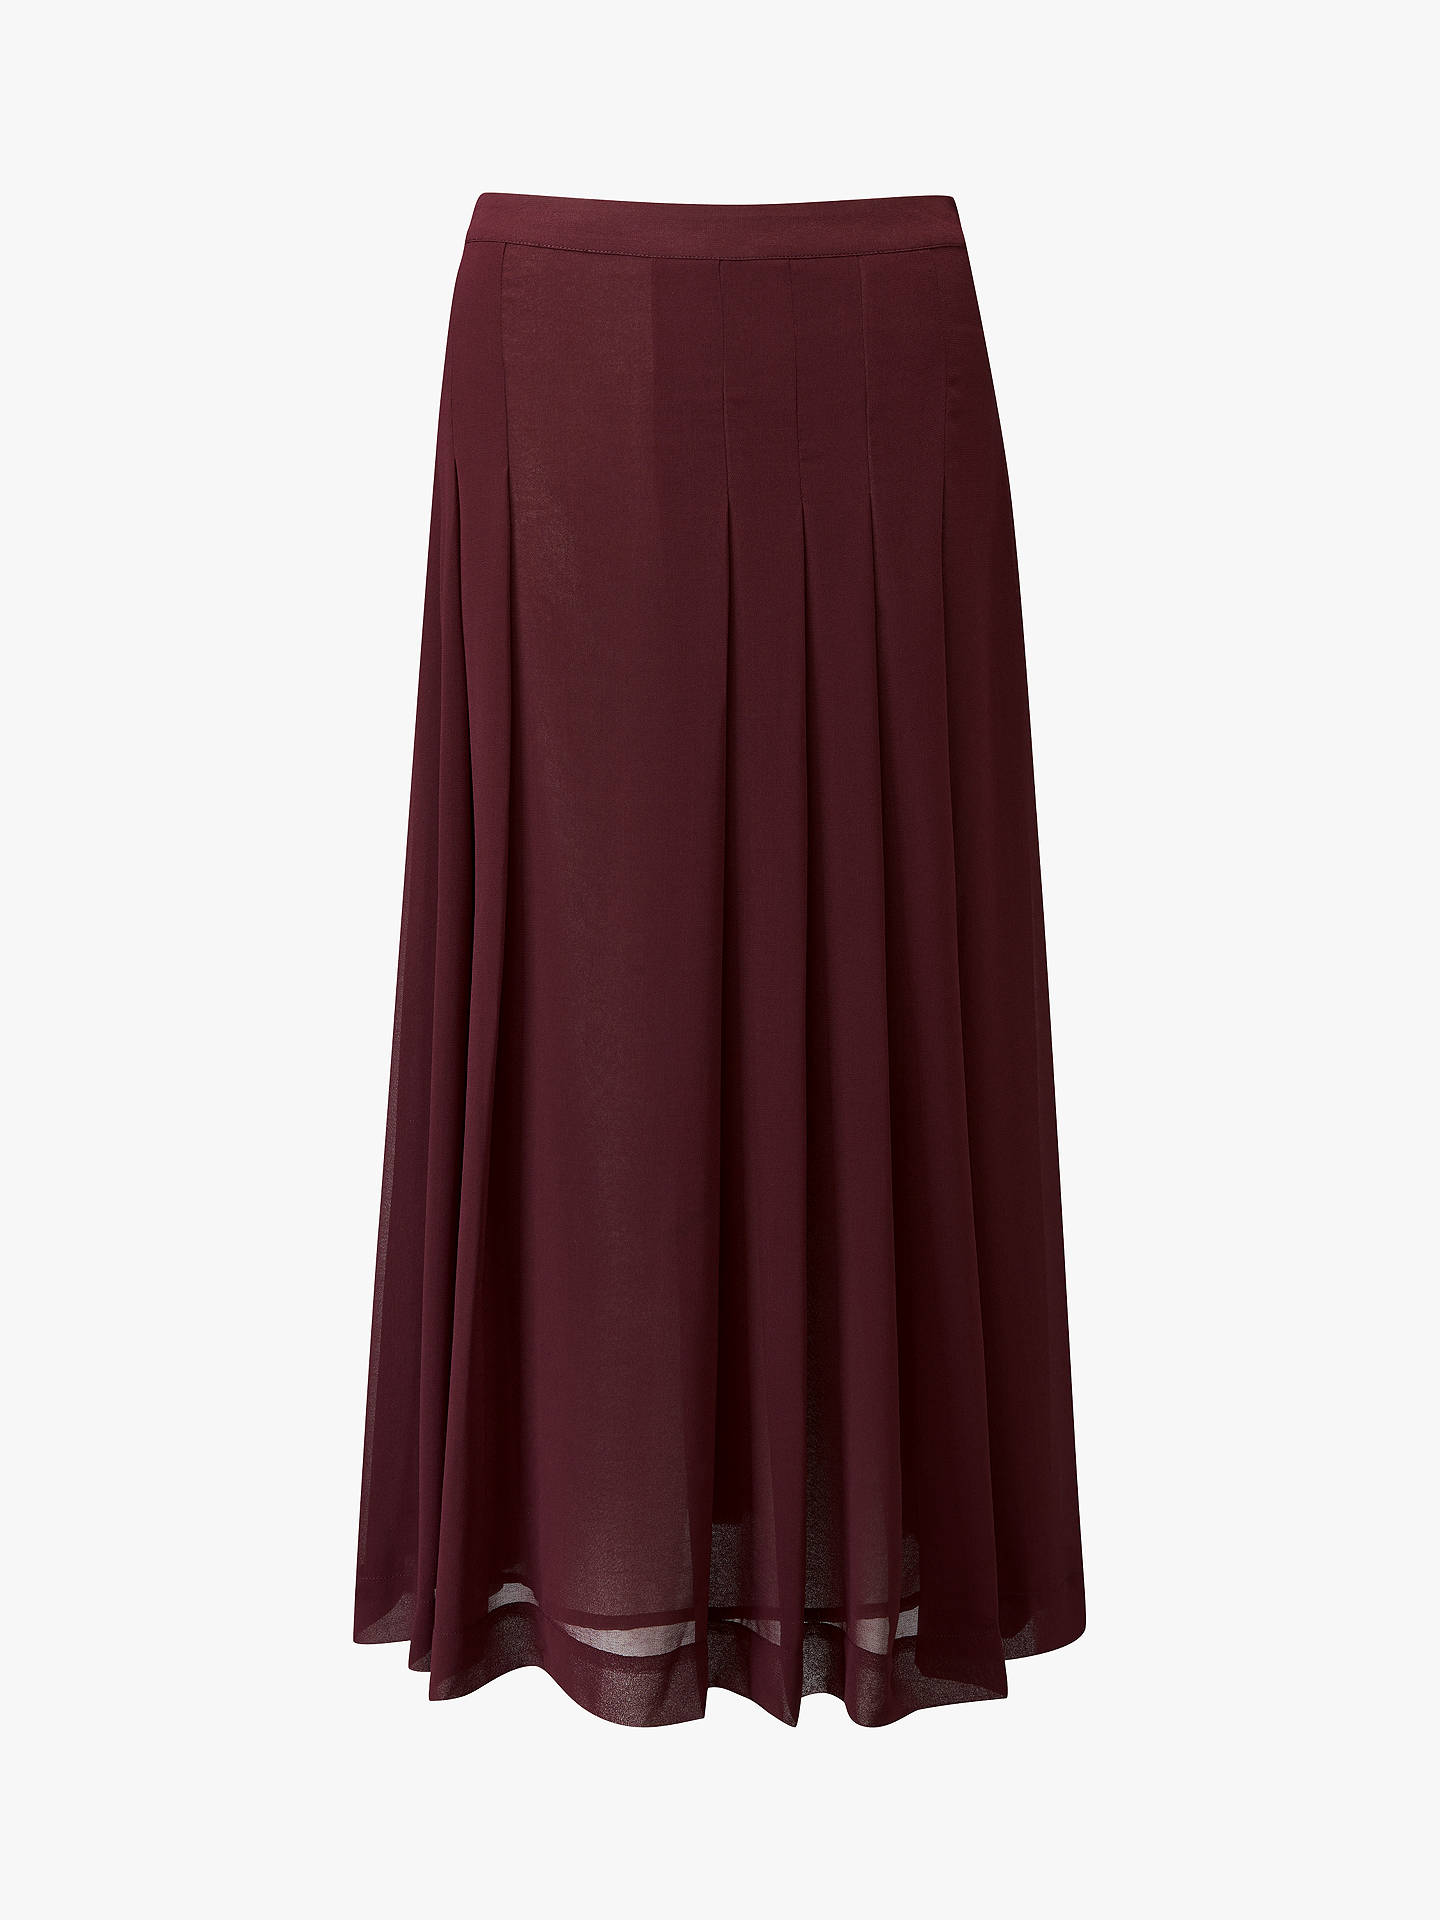 BuyPure Collection Soft Pleat Skirt, Burgundy, 8 Online at johnlewis.com